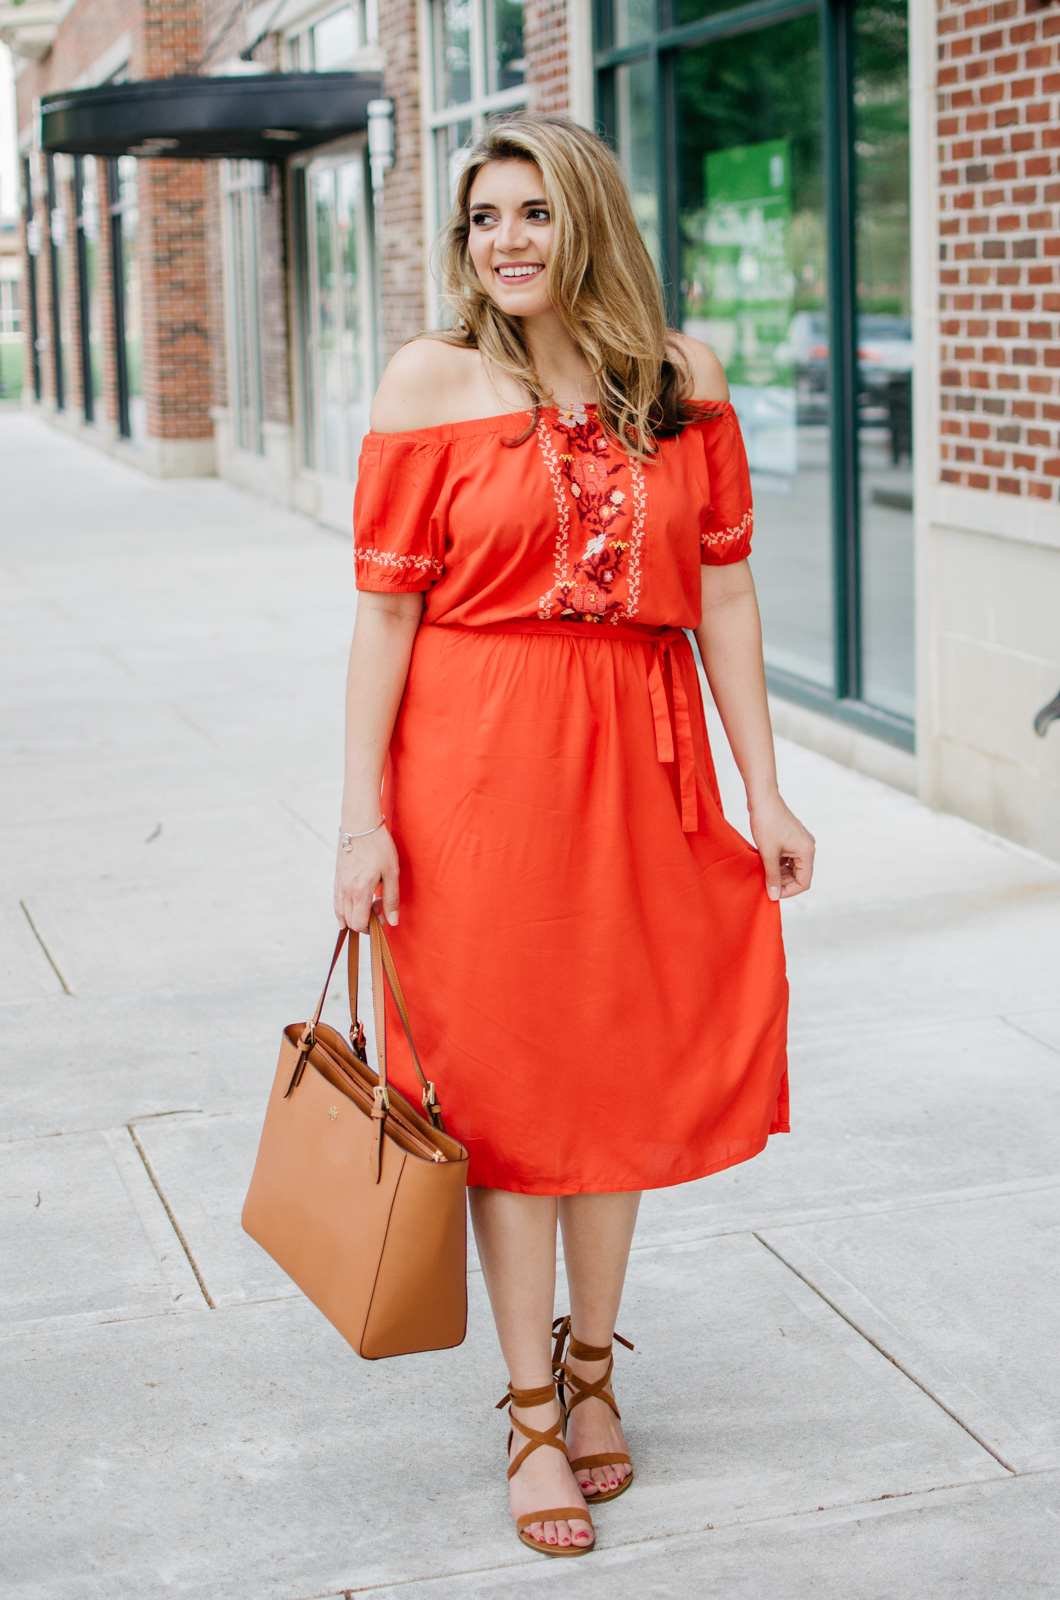 spring outfit ideas - off shoulder embroidered dress | bylaurenm.com